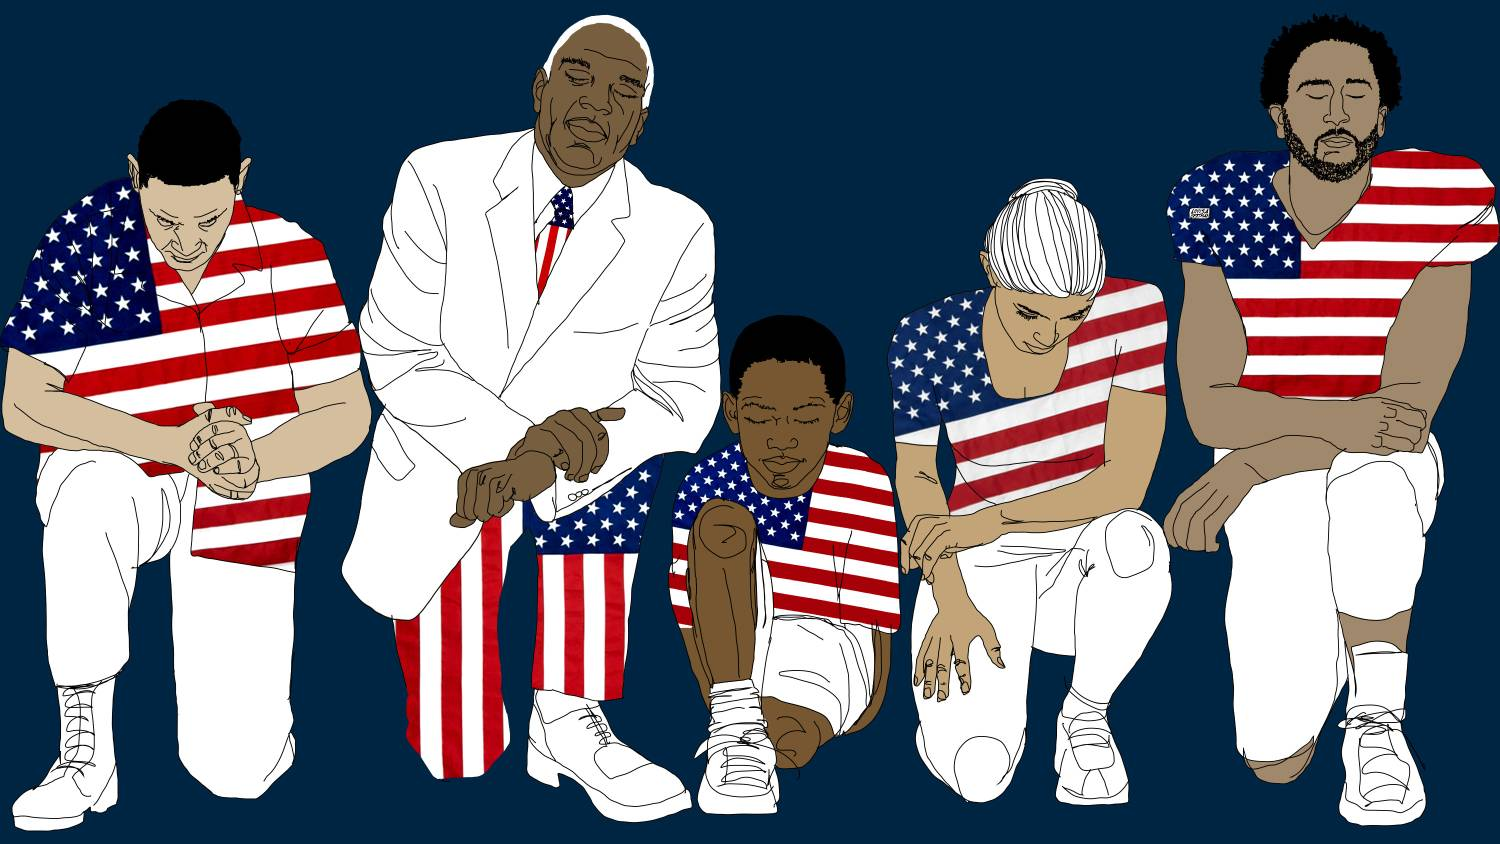 on flag day the most patriotic among us should be kneeling